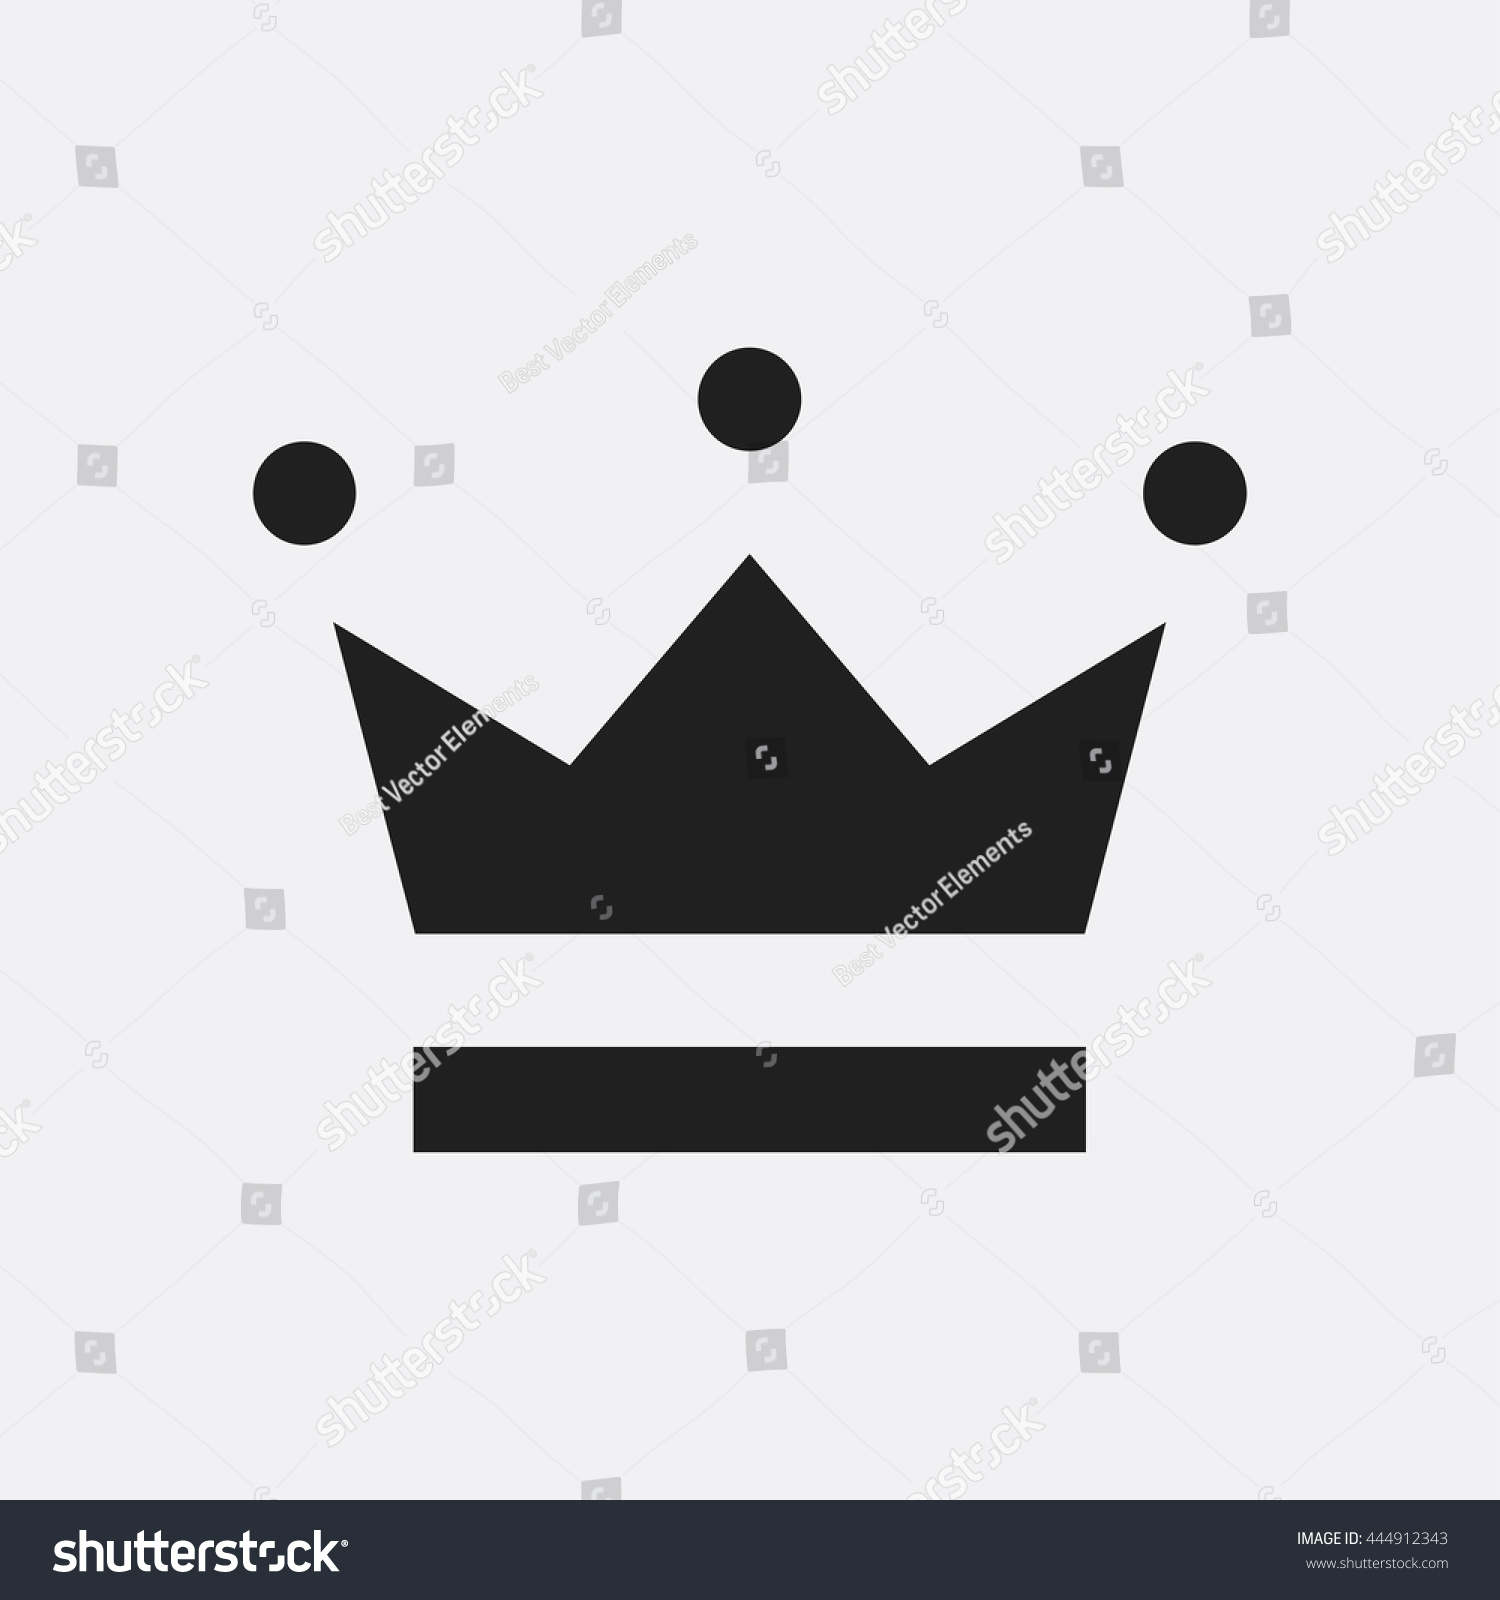 Crown facebook symbol choice image symbol and sign ideas crown icon stock vector 444912343 shutterstock crown icon buycottarizona buycottarizona